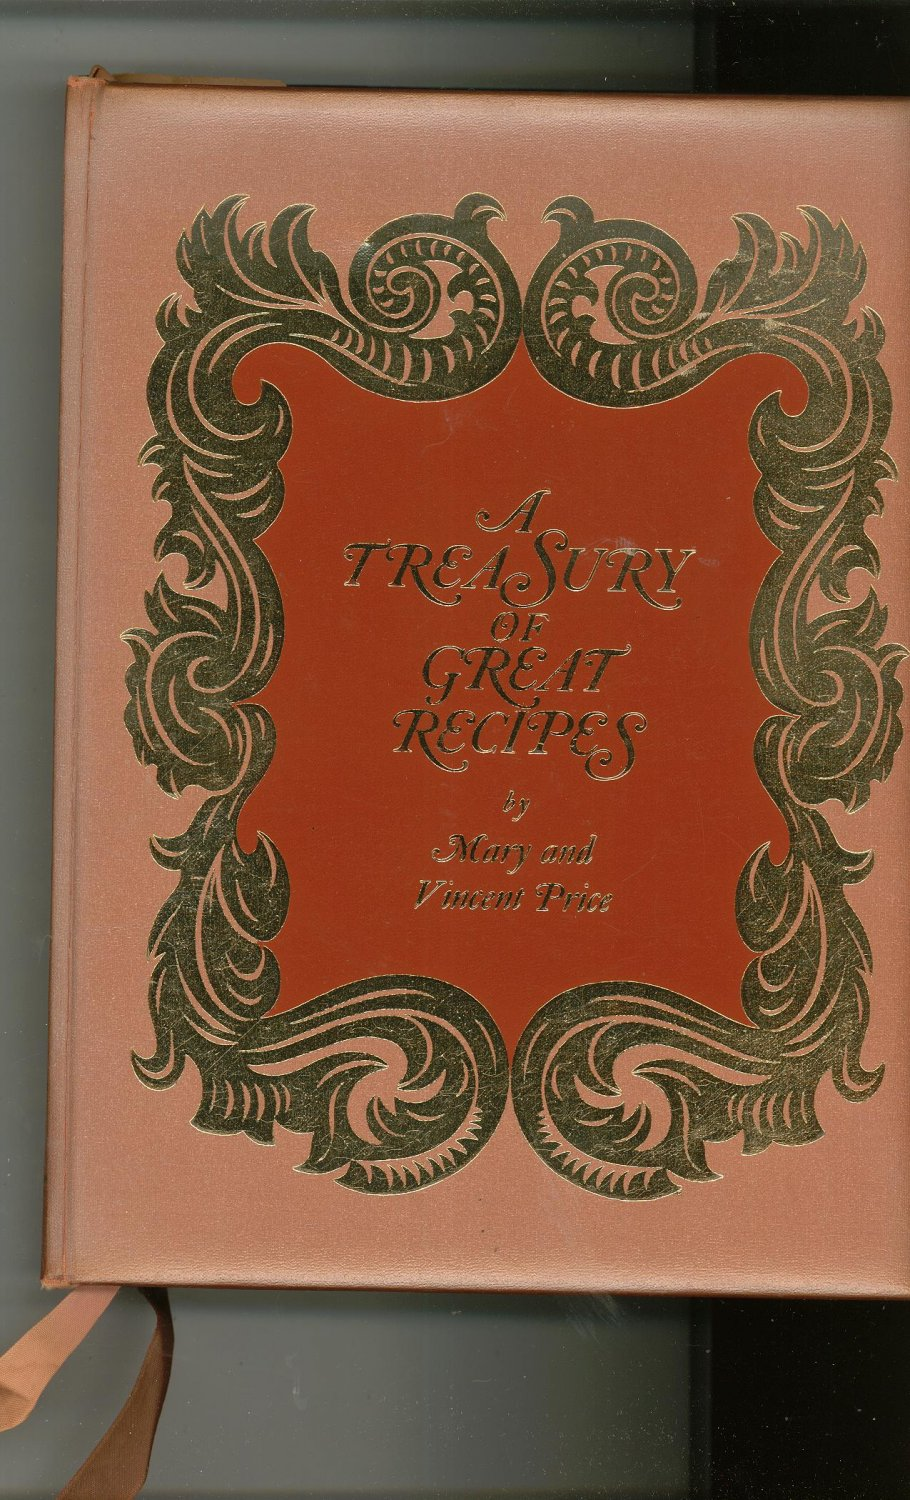 Vintage First Printing A Treasury Of Great Recipes Cookbook by Mary & Vince Price 1965